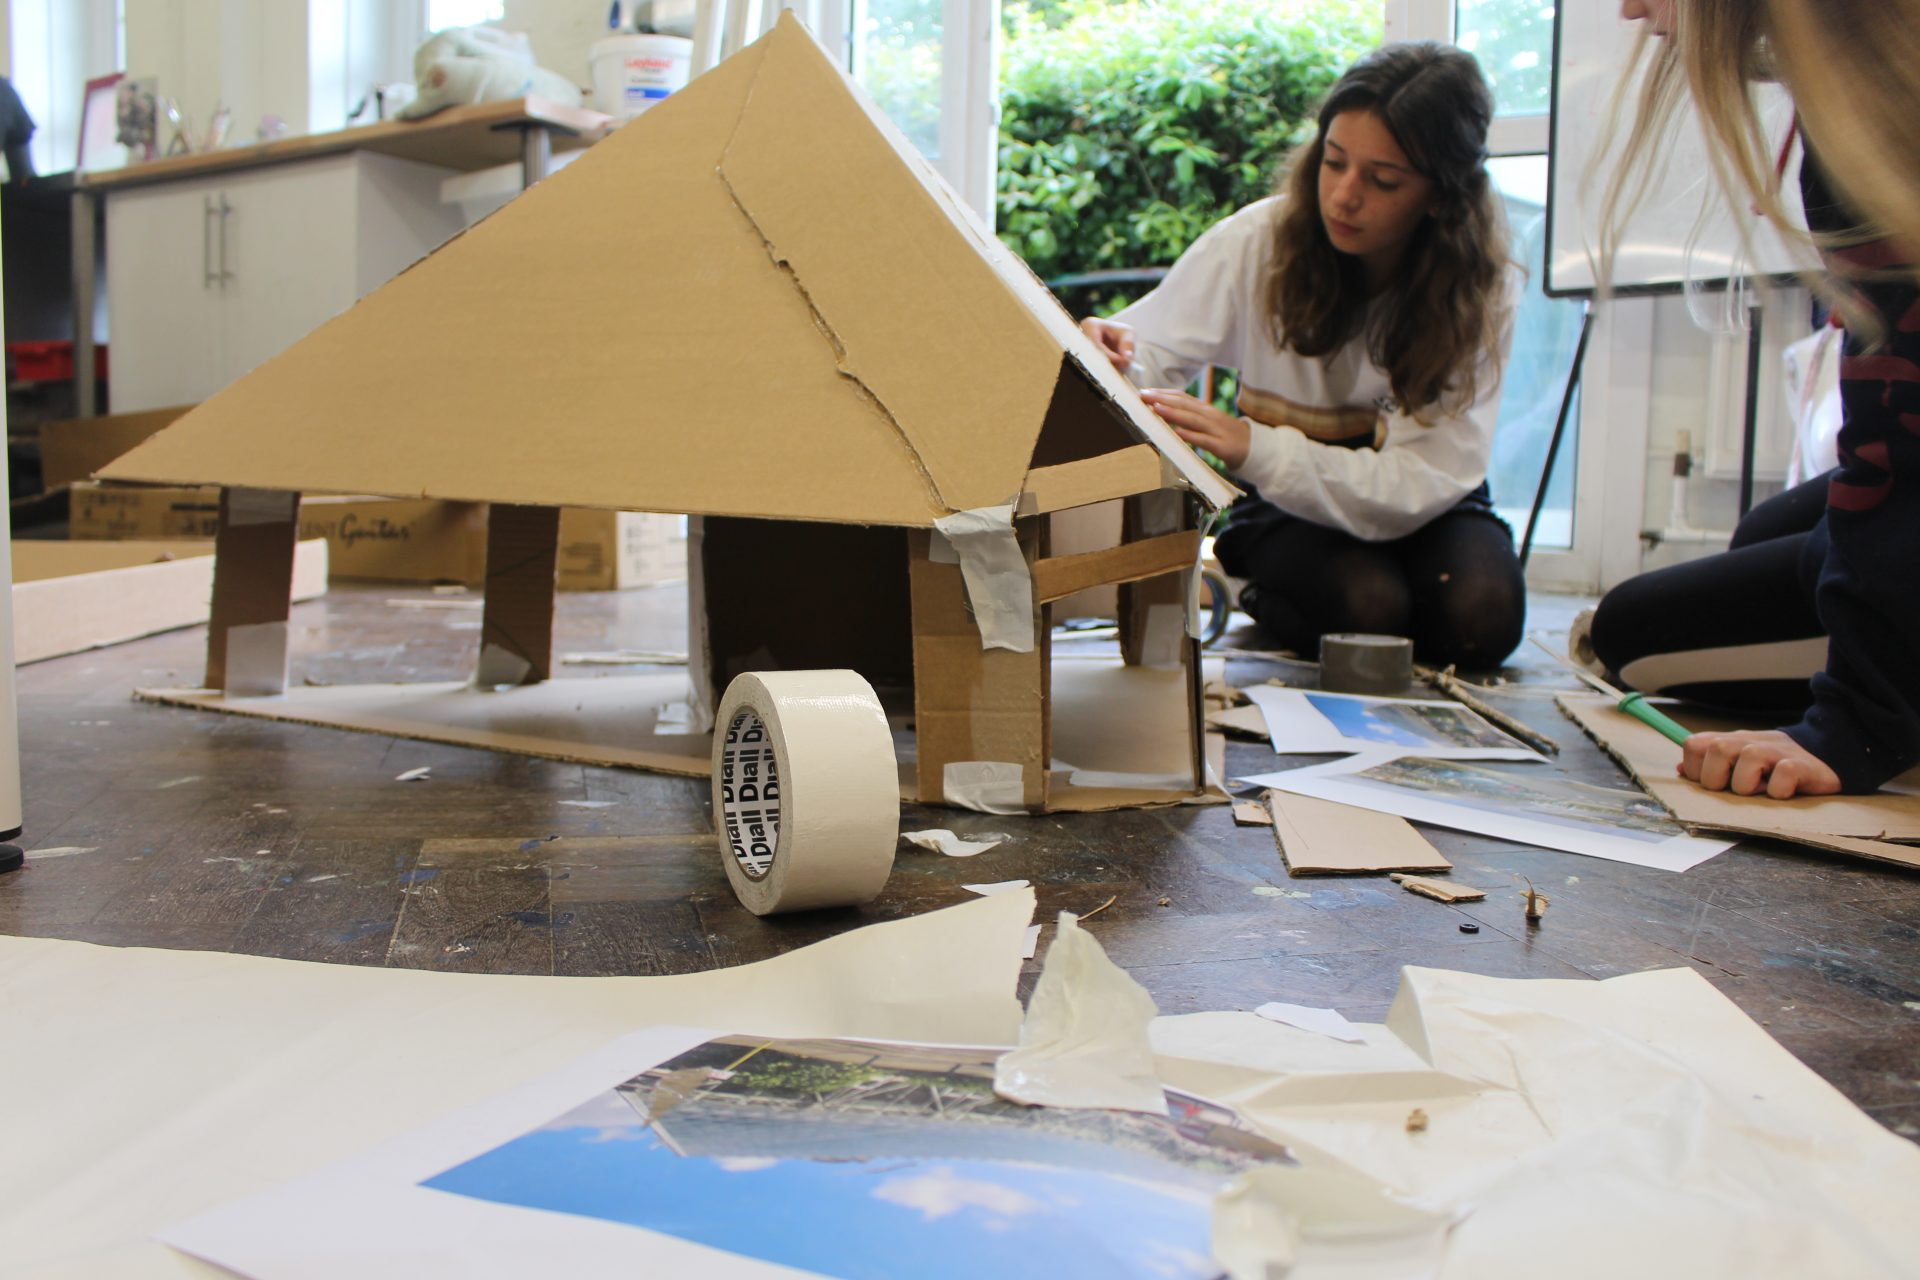 Cardboard Sculpture masterclass with Coral Williams